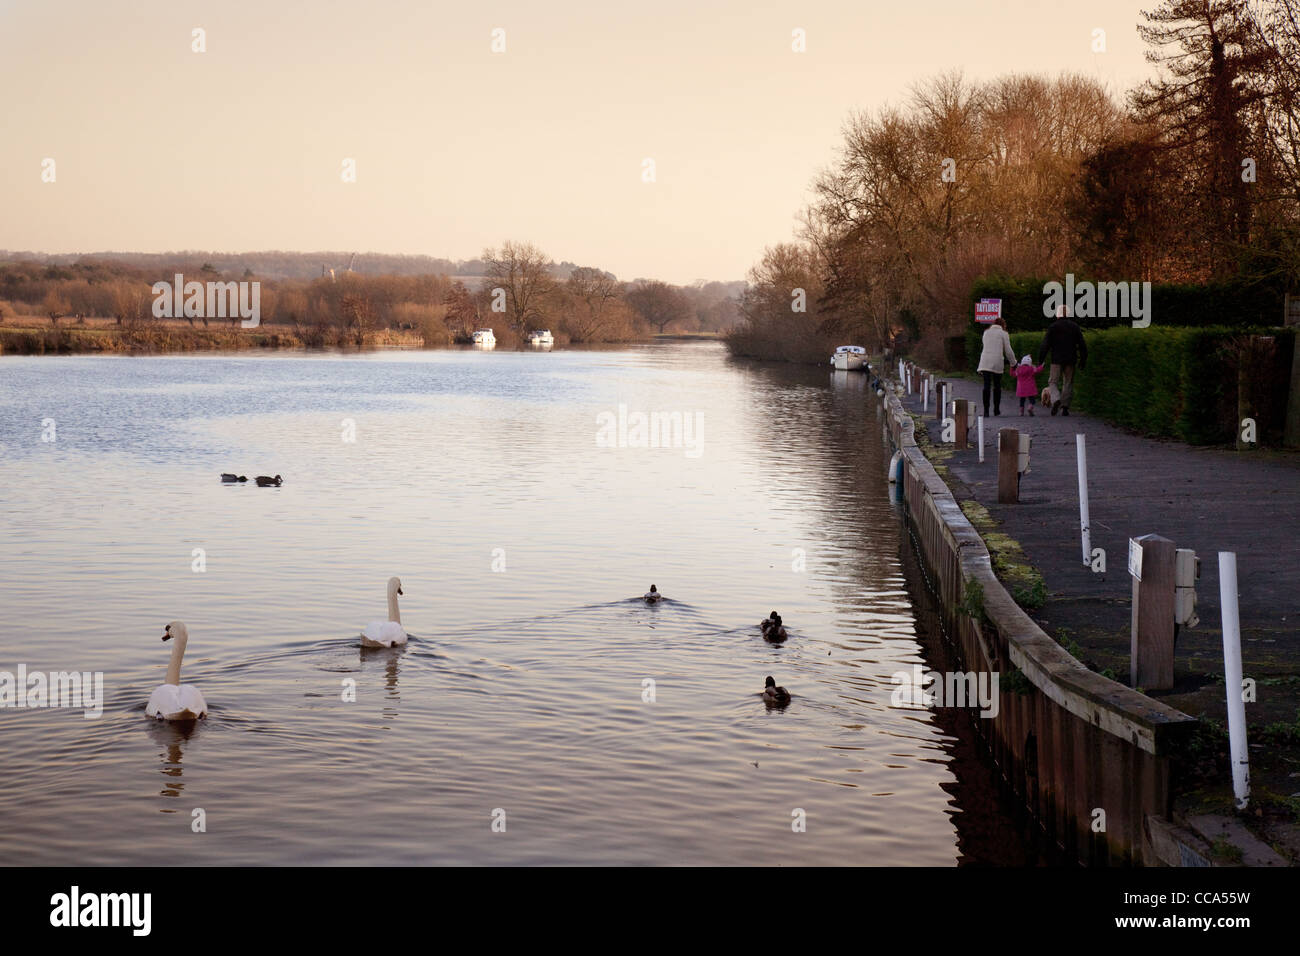 The towpath on the River Thames path at Moulsford, Oxfordshire UK - Stock Image